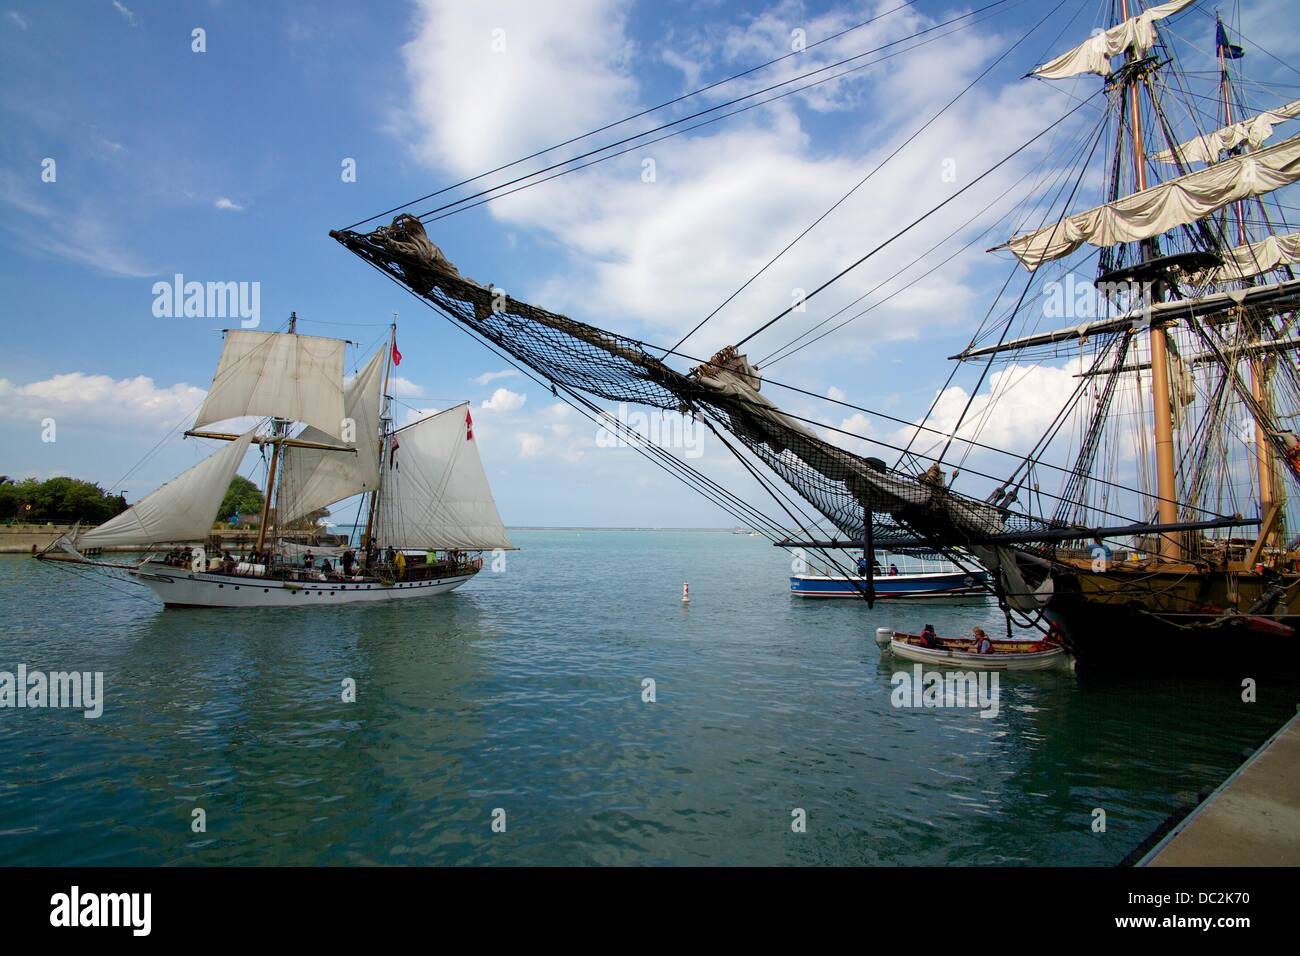 Chicago, Illinois, USA. 7th August 2013. The brigantine Pathfinder sails past the docked Flagship Niagara at Tall - Stock Image